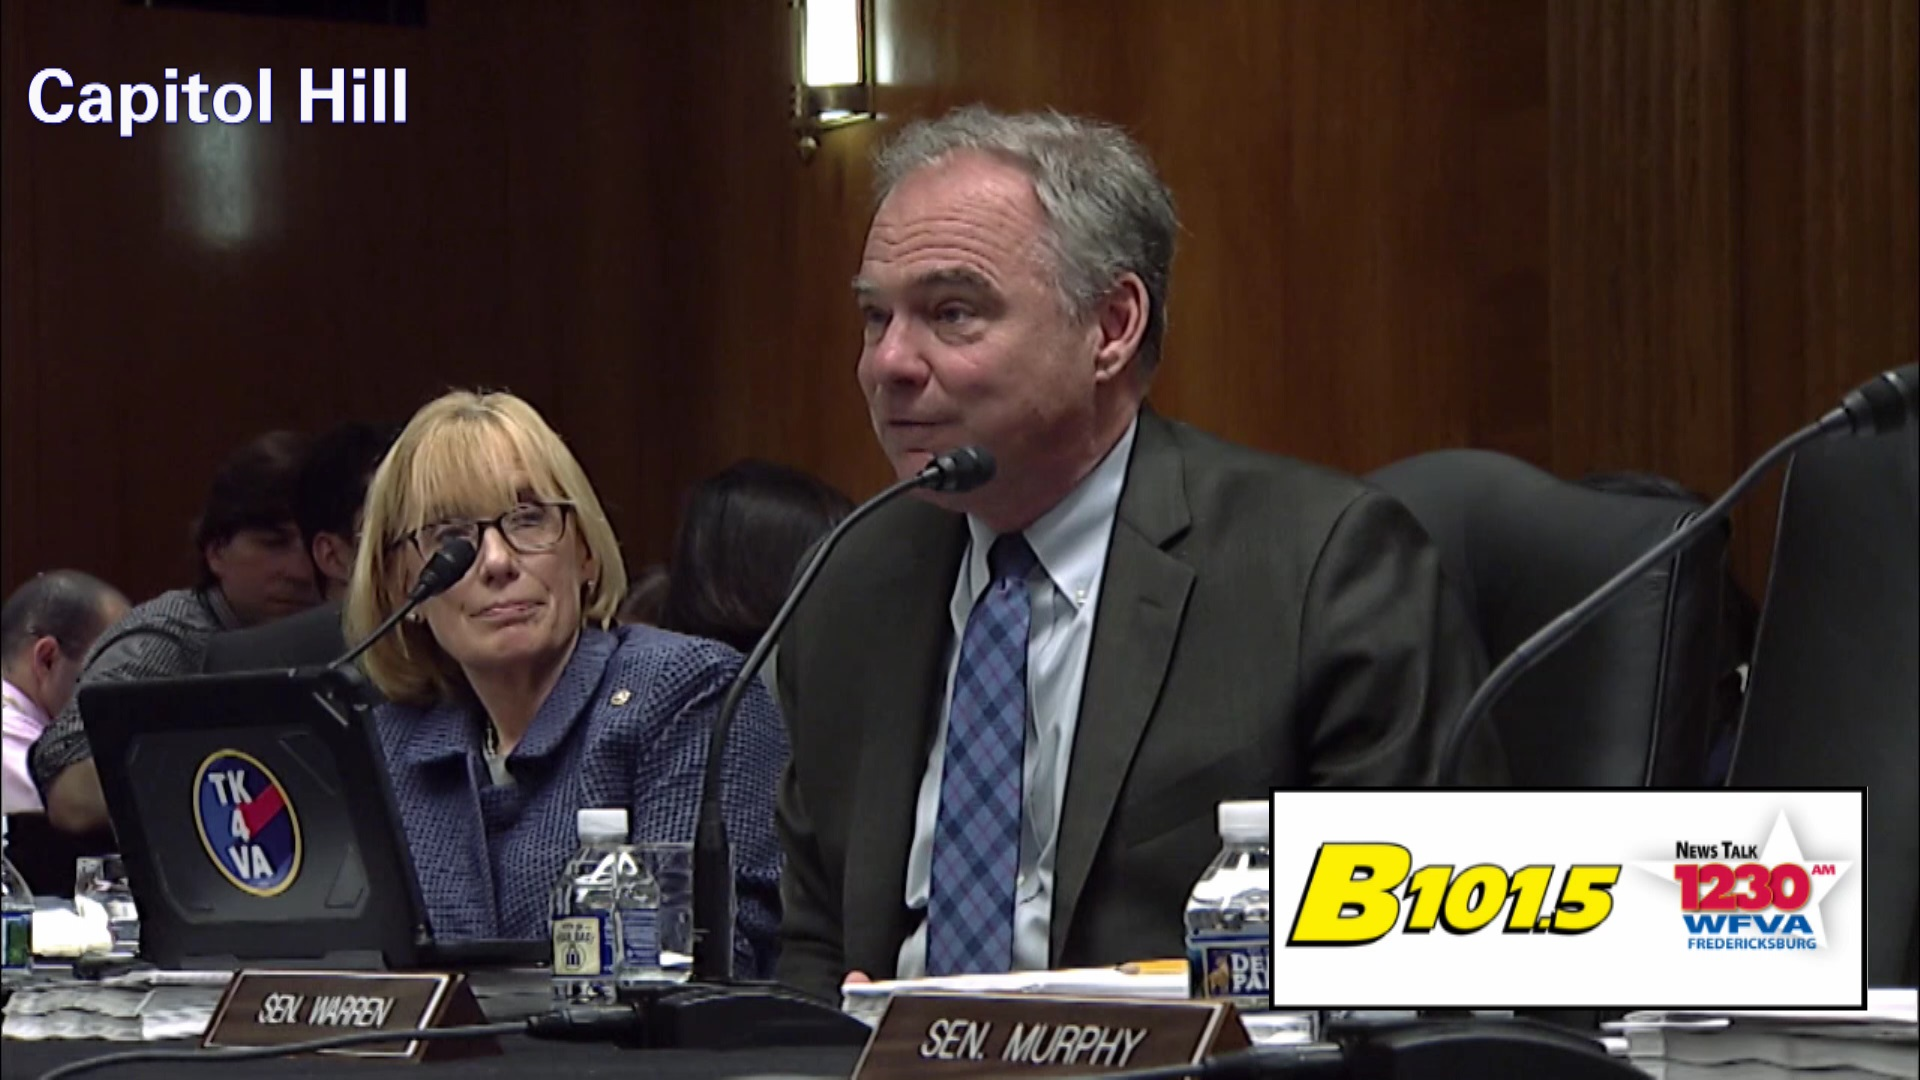 Senator Kaine's bill to raise the tobacco age to 21 wins committee approval